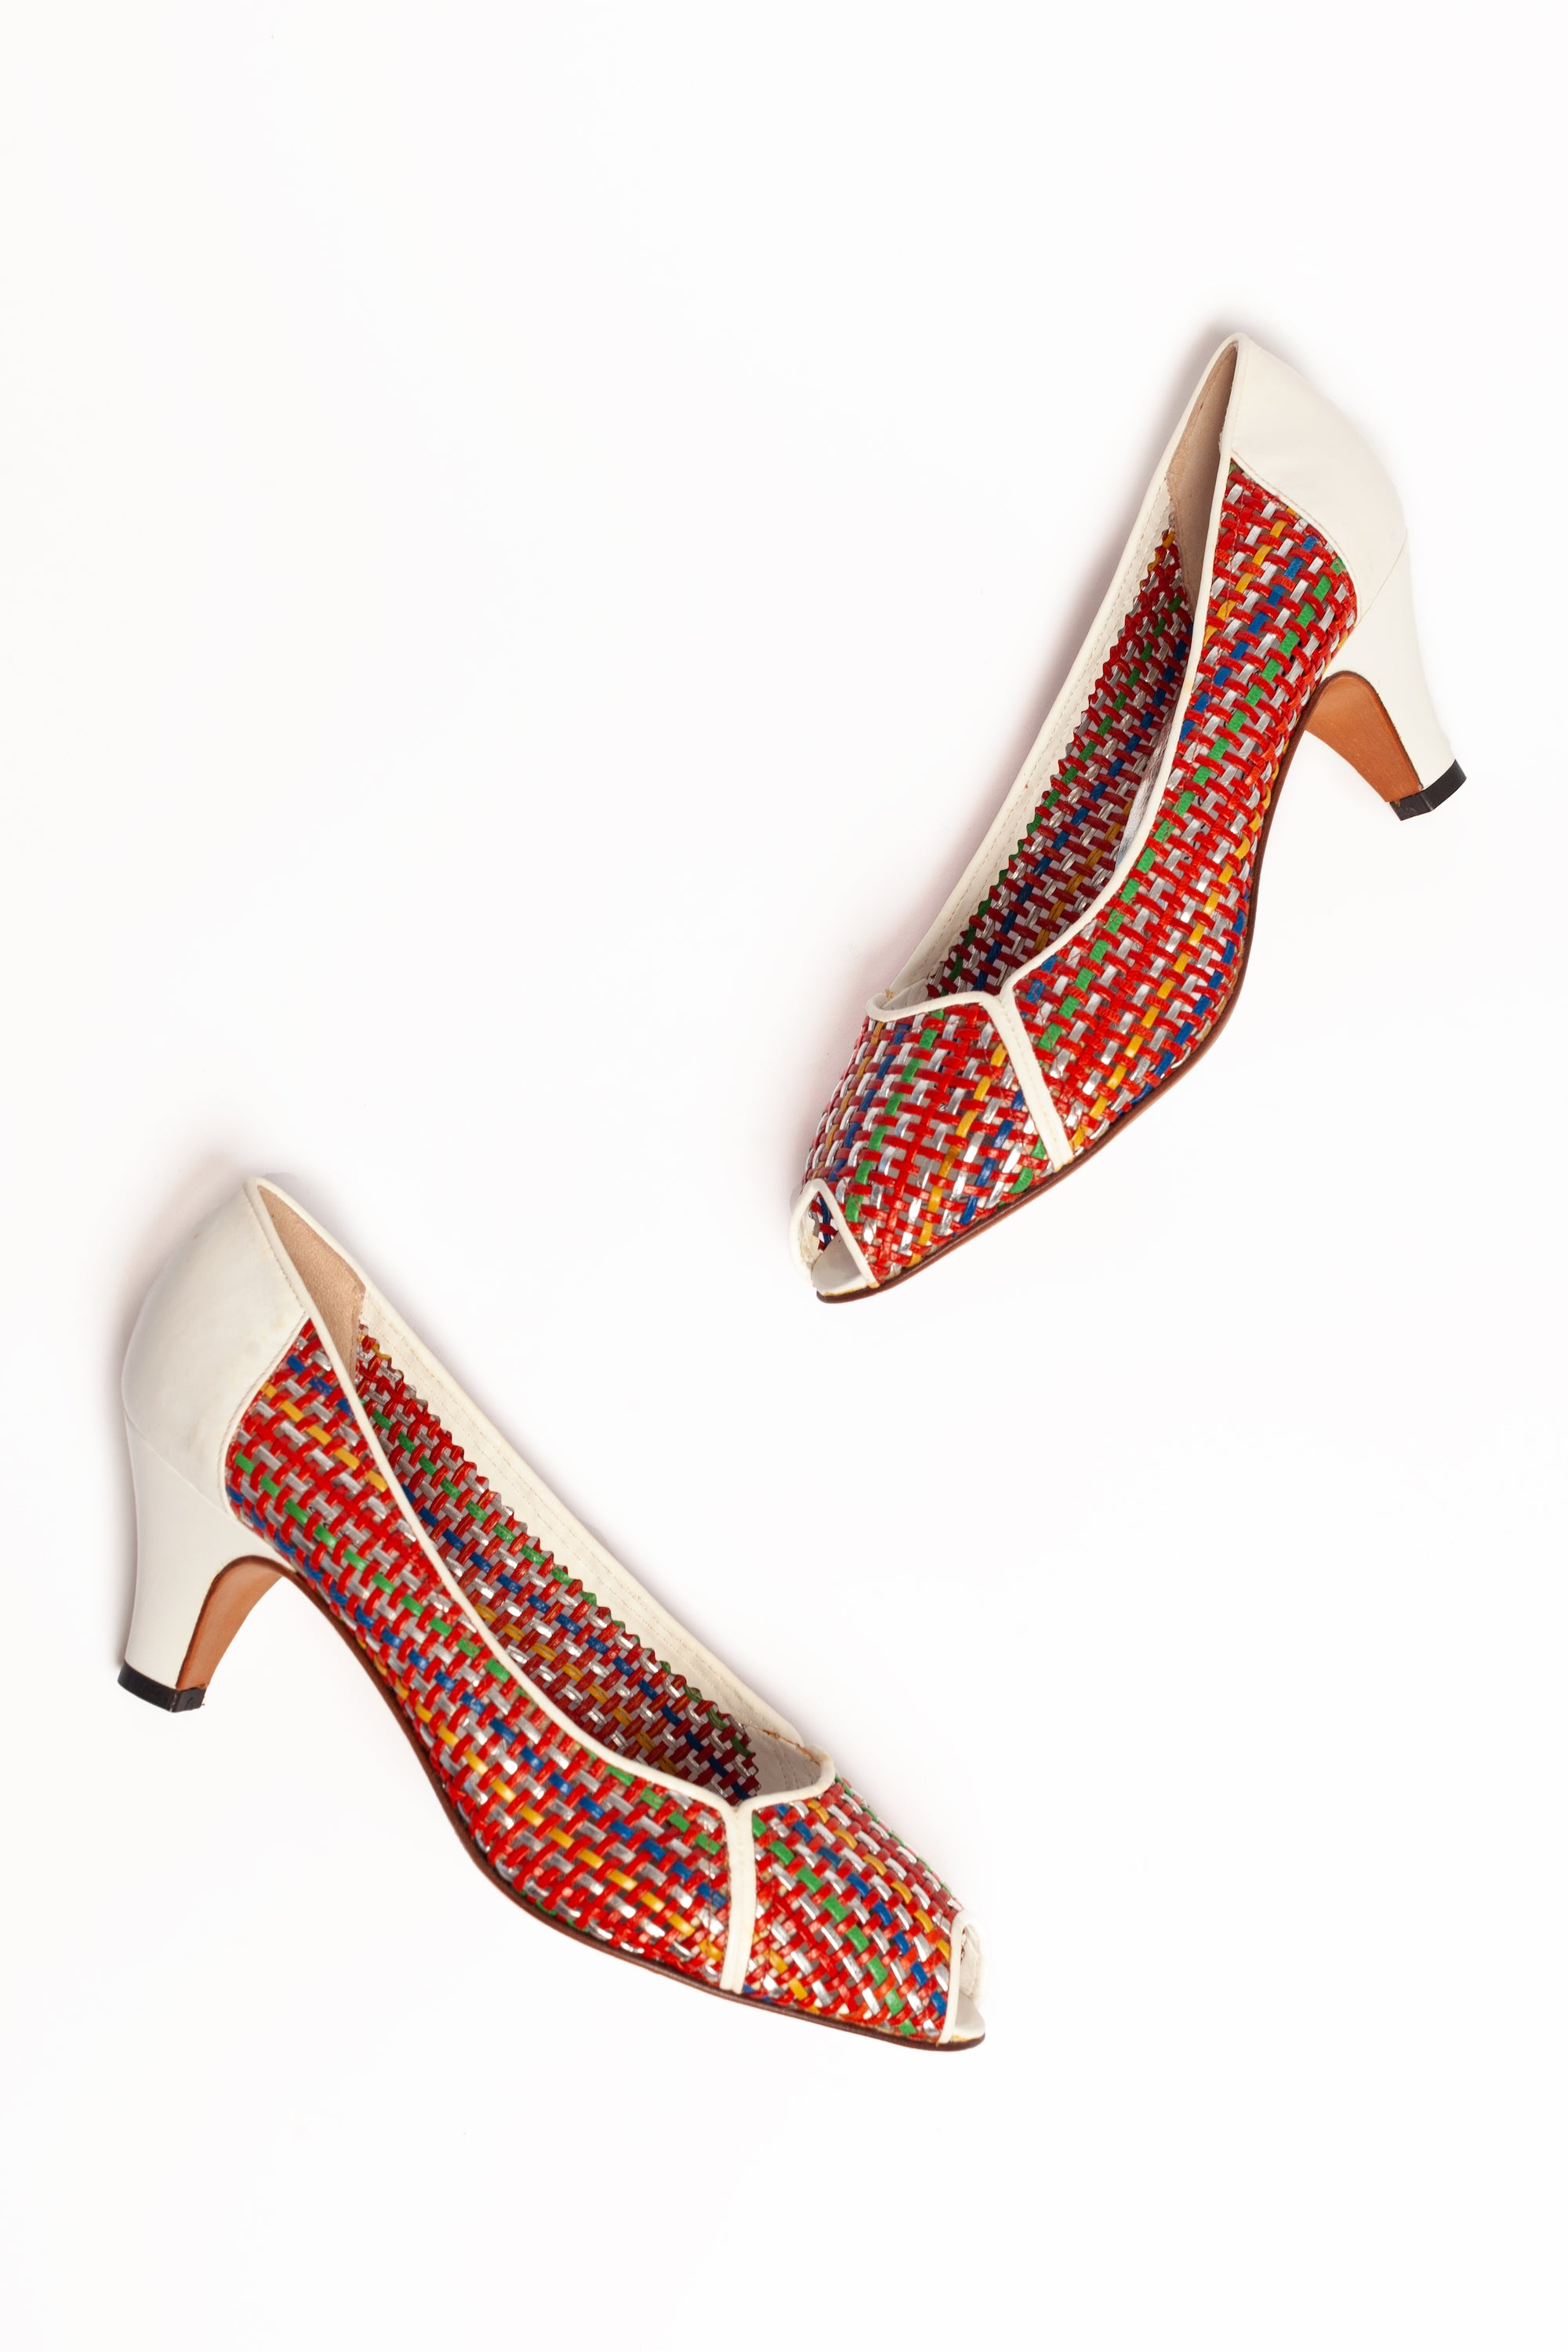 Sergio Rossi <br> 1980's woven leather peep toe sandals